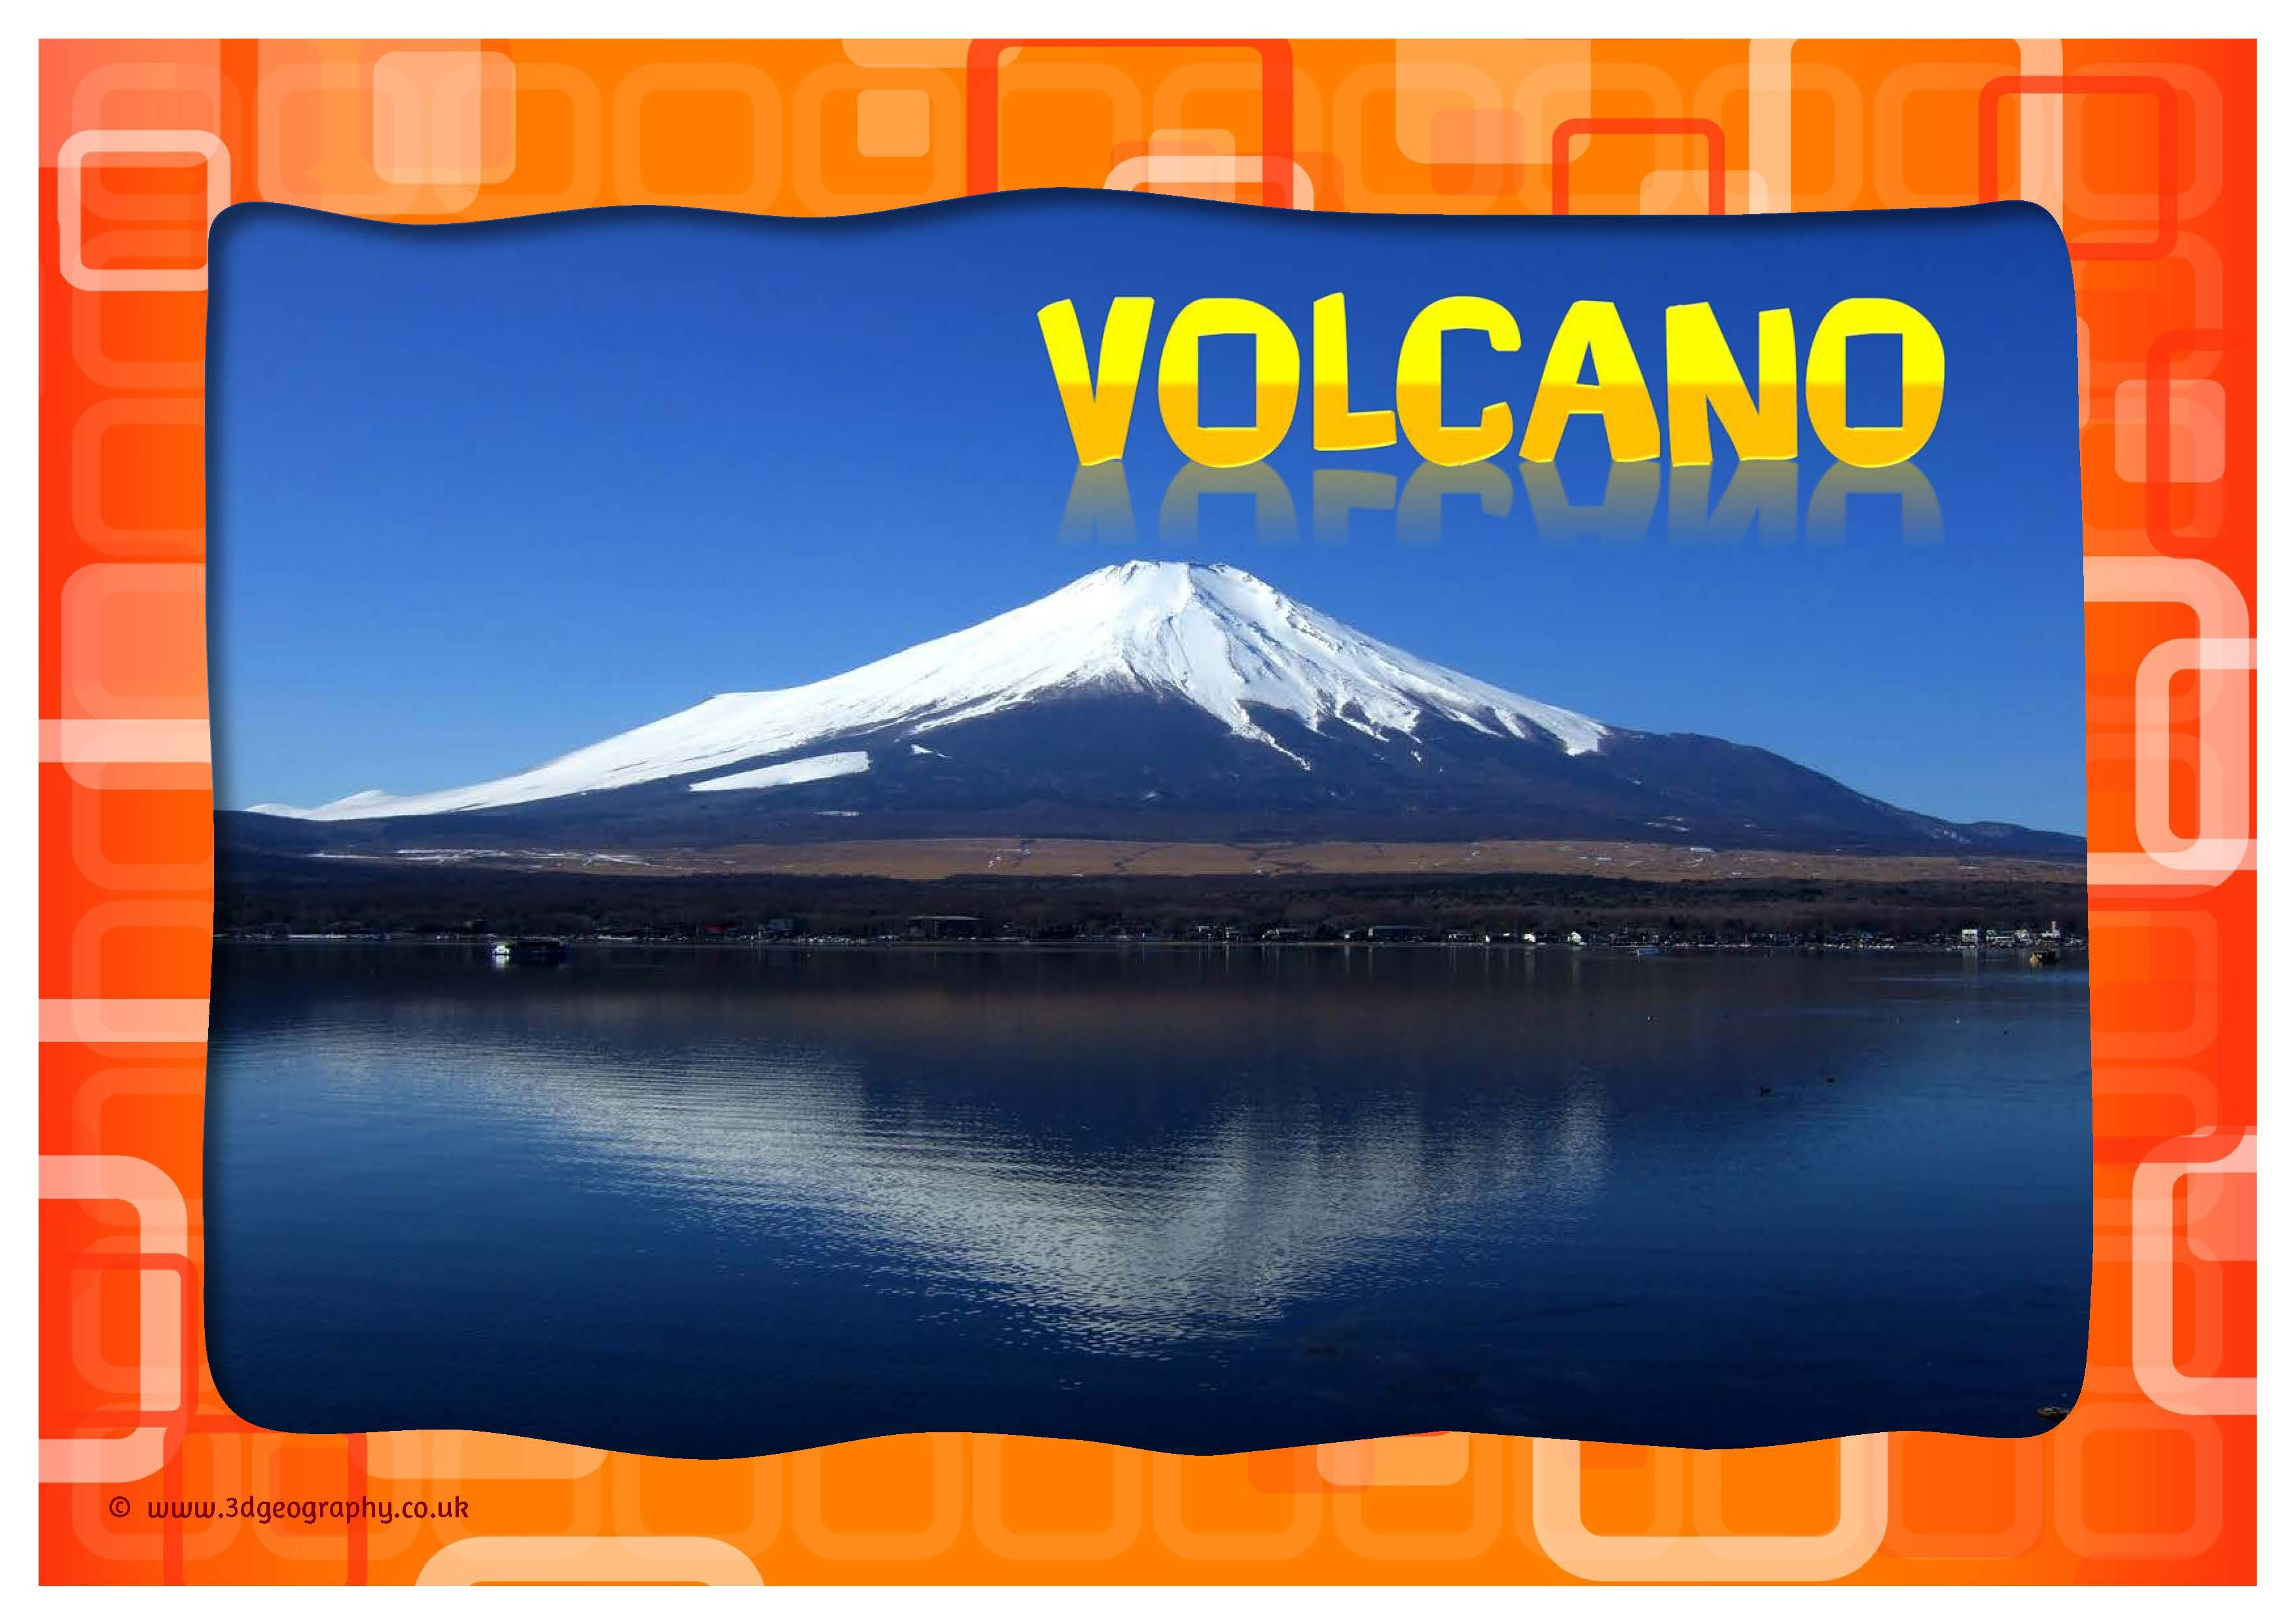 Volcano Posters For Class Display